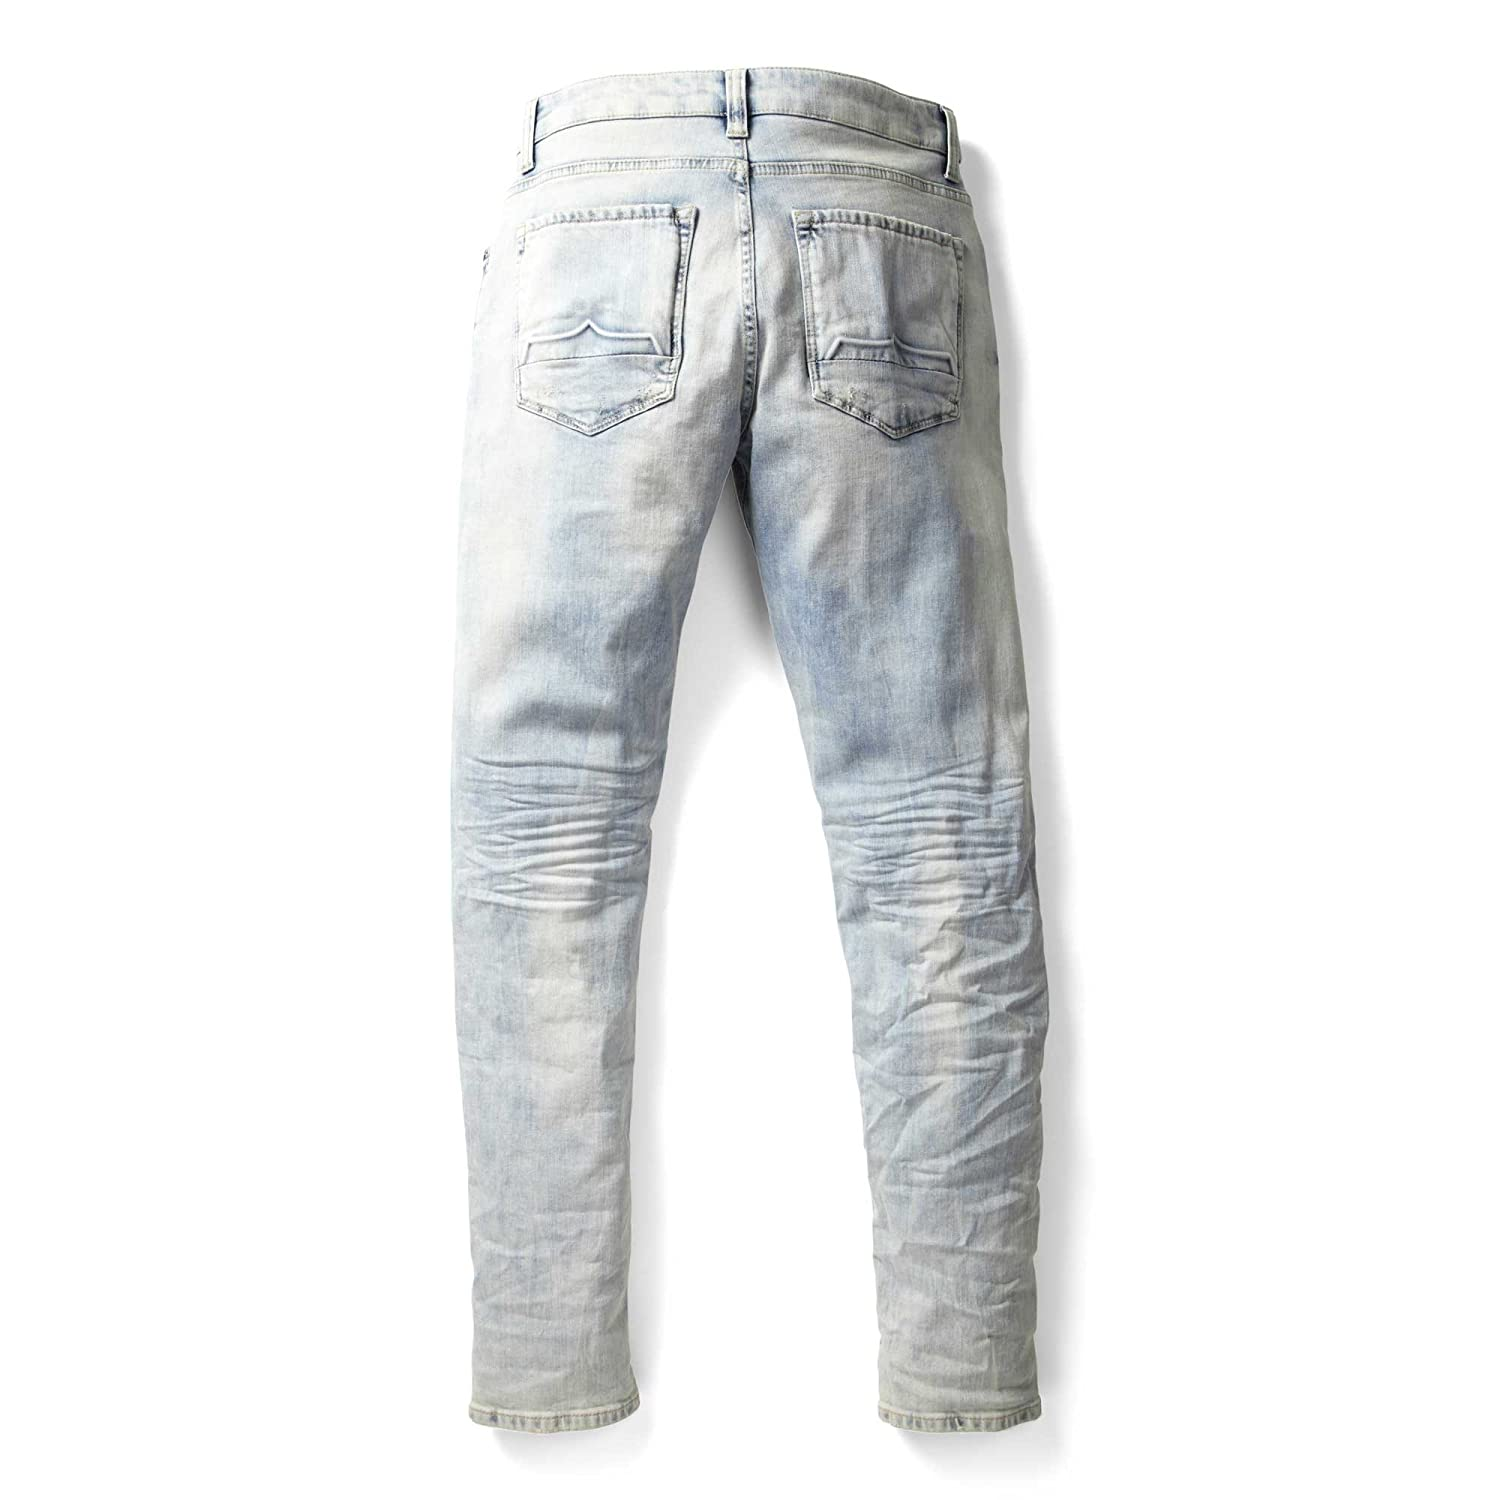 883 POLICE Laker 299 Slim Fit Faded Jeans